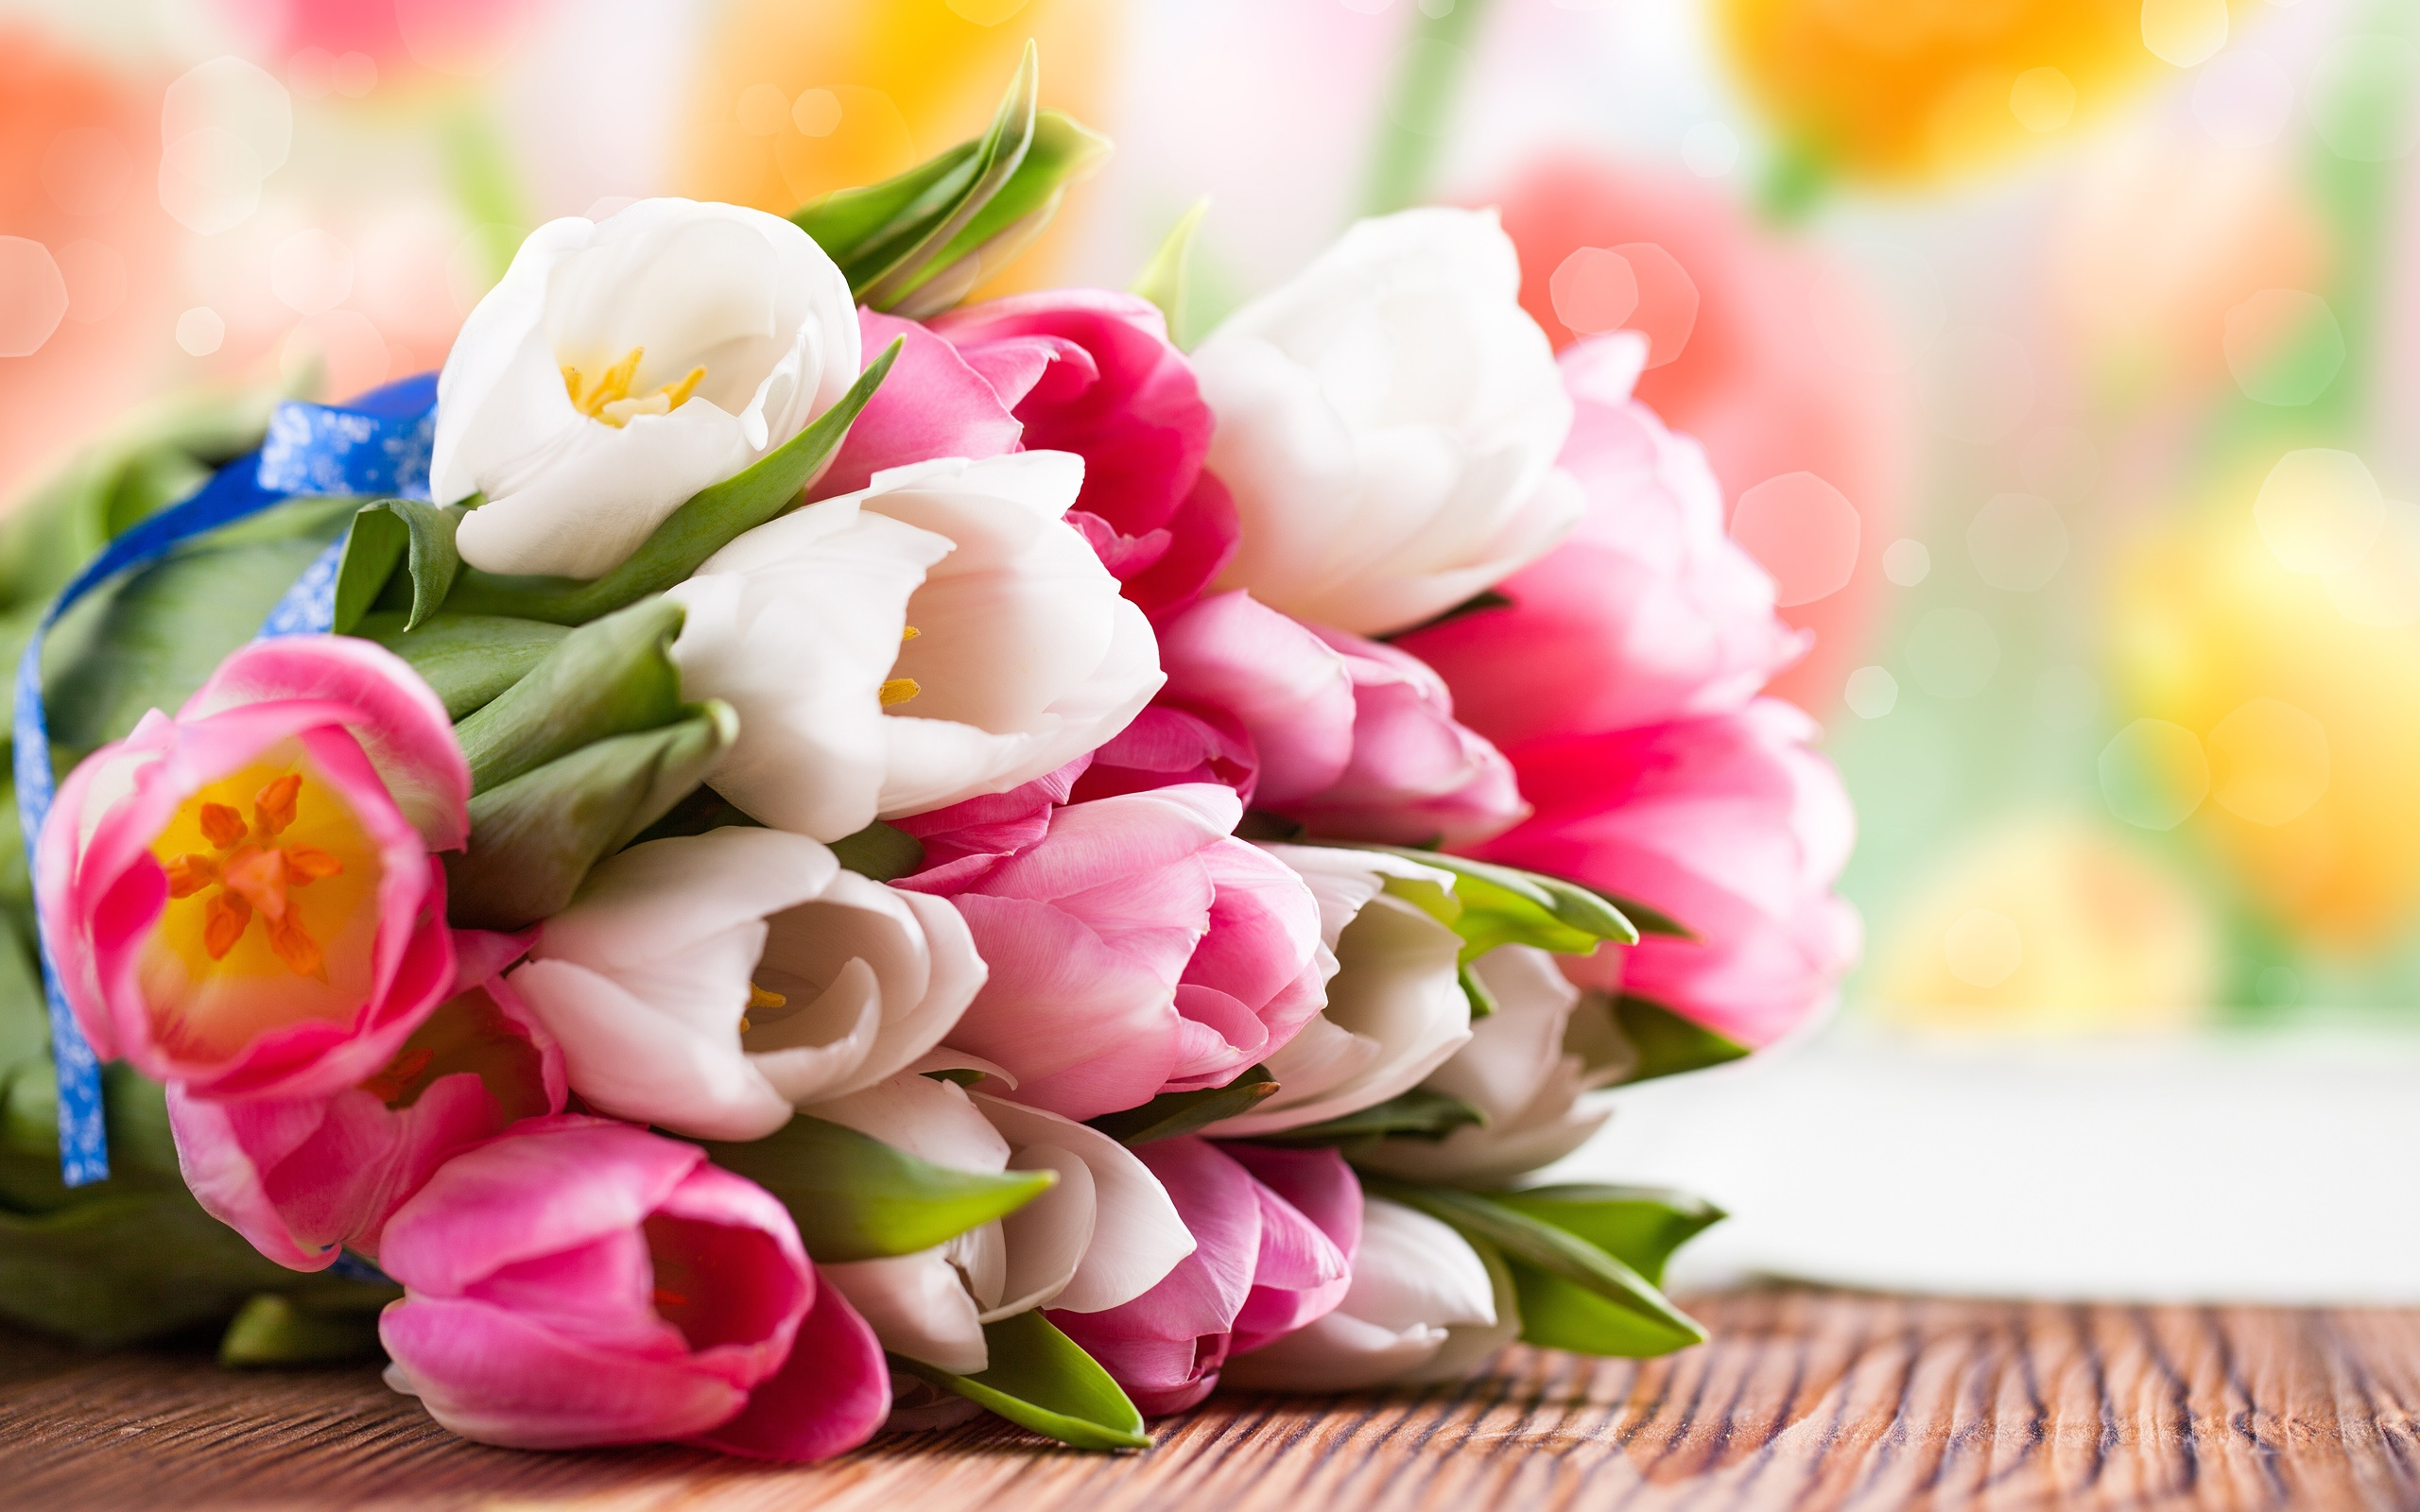 Pink-and-white-tulip-flower-bouquet_2560x1600